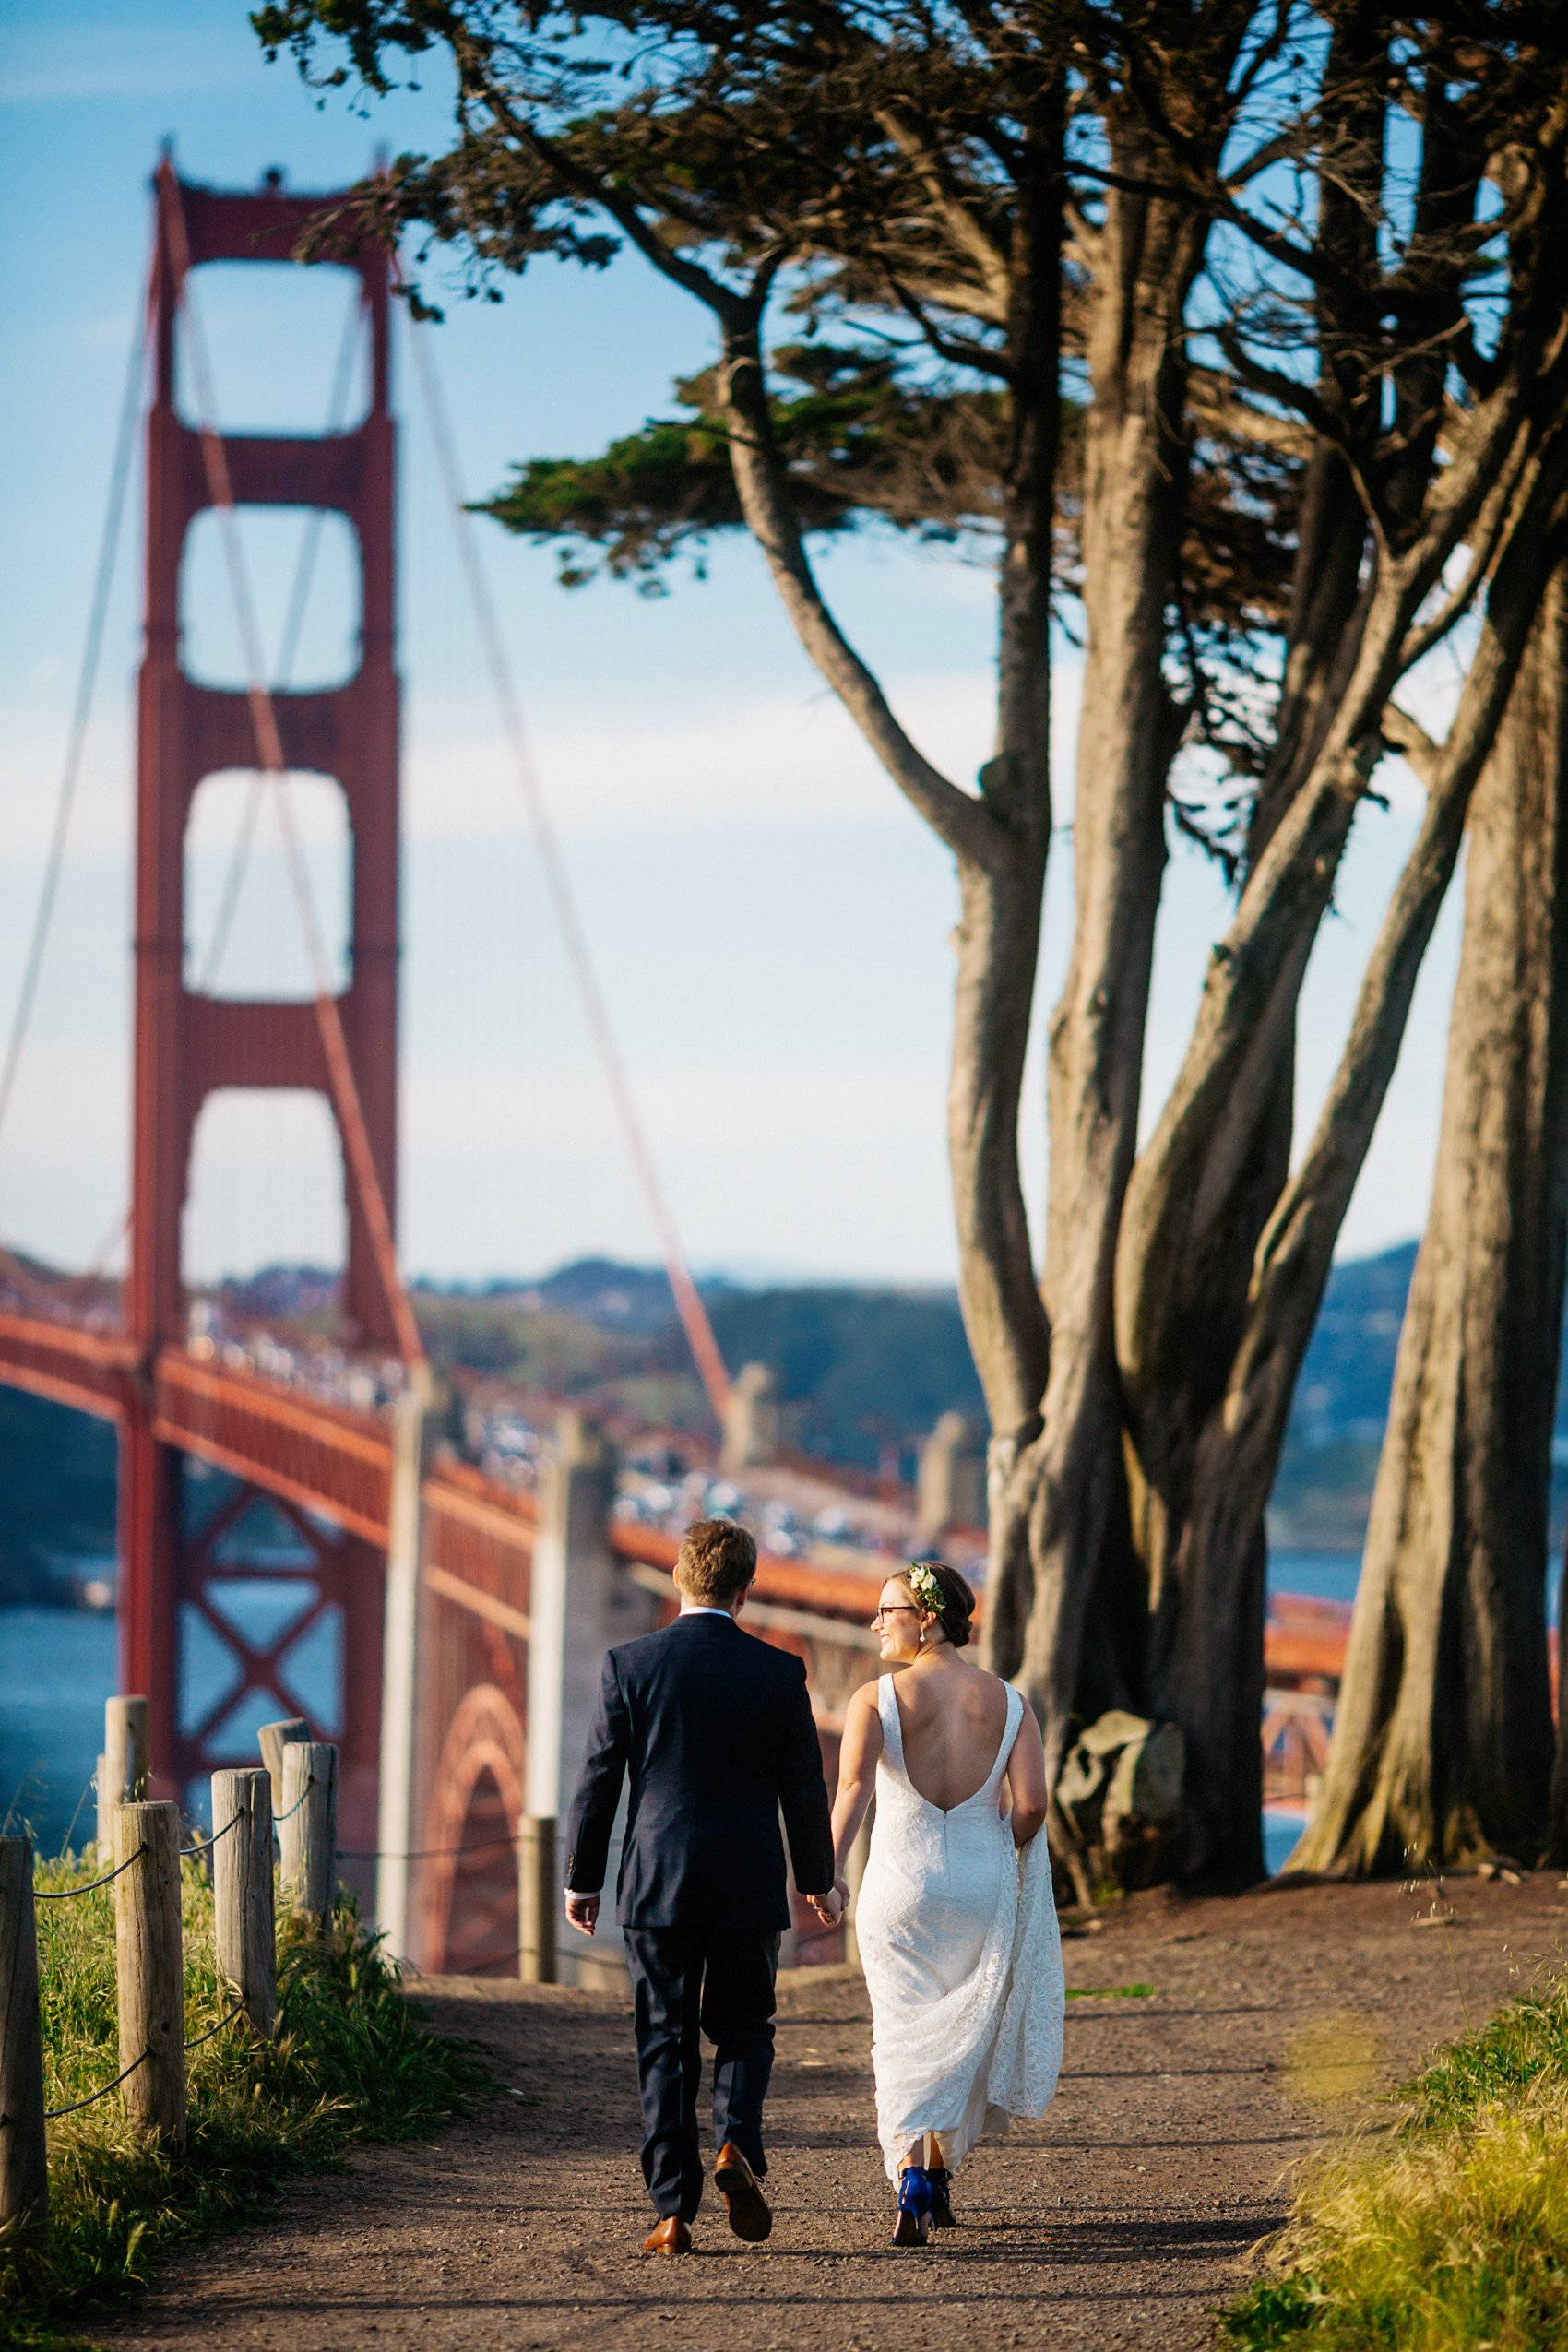 Presidio wedding San Francisco 013 photo